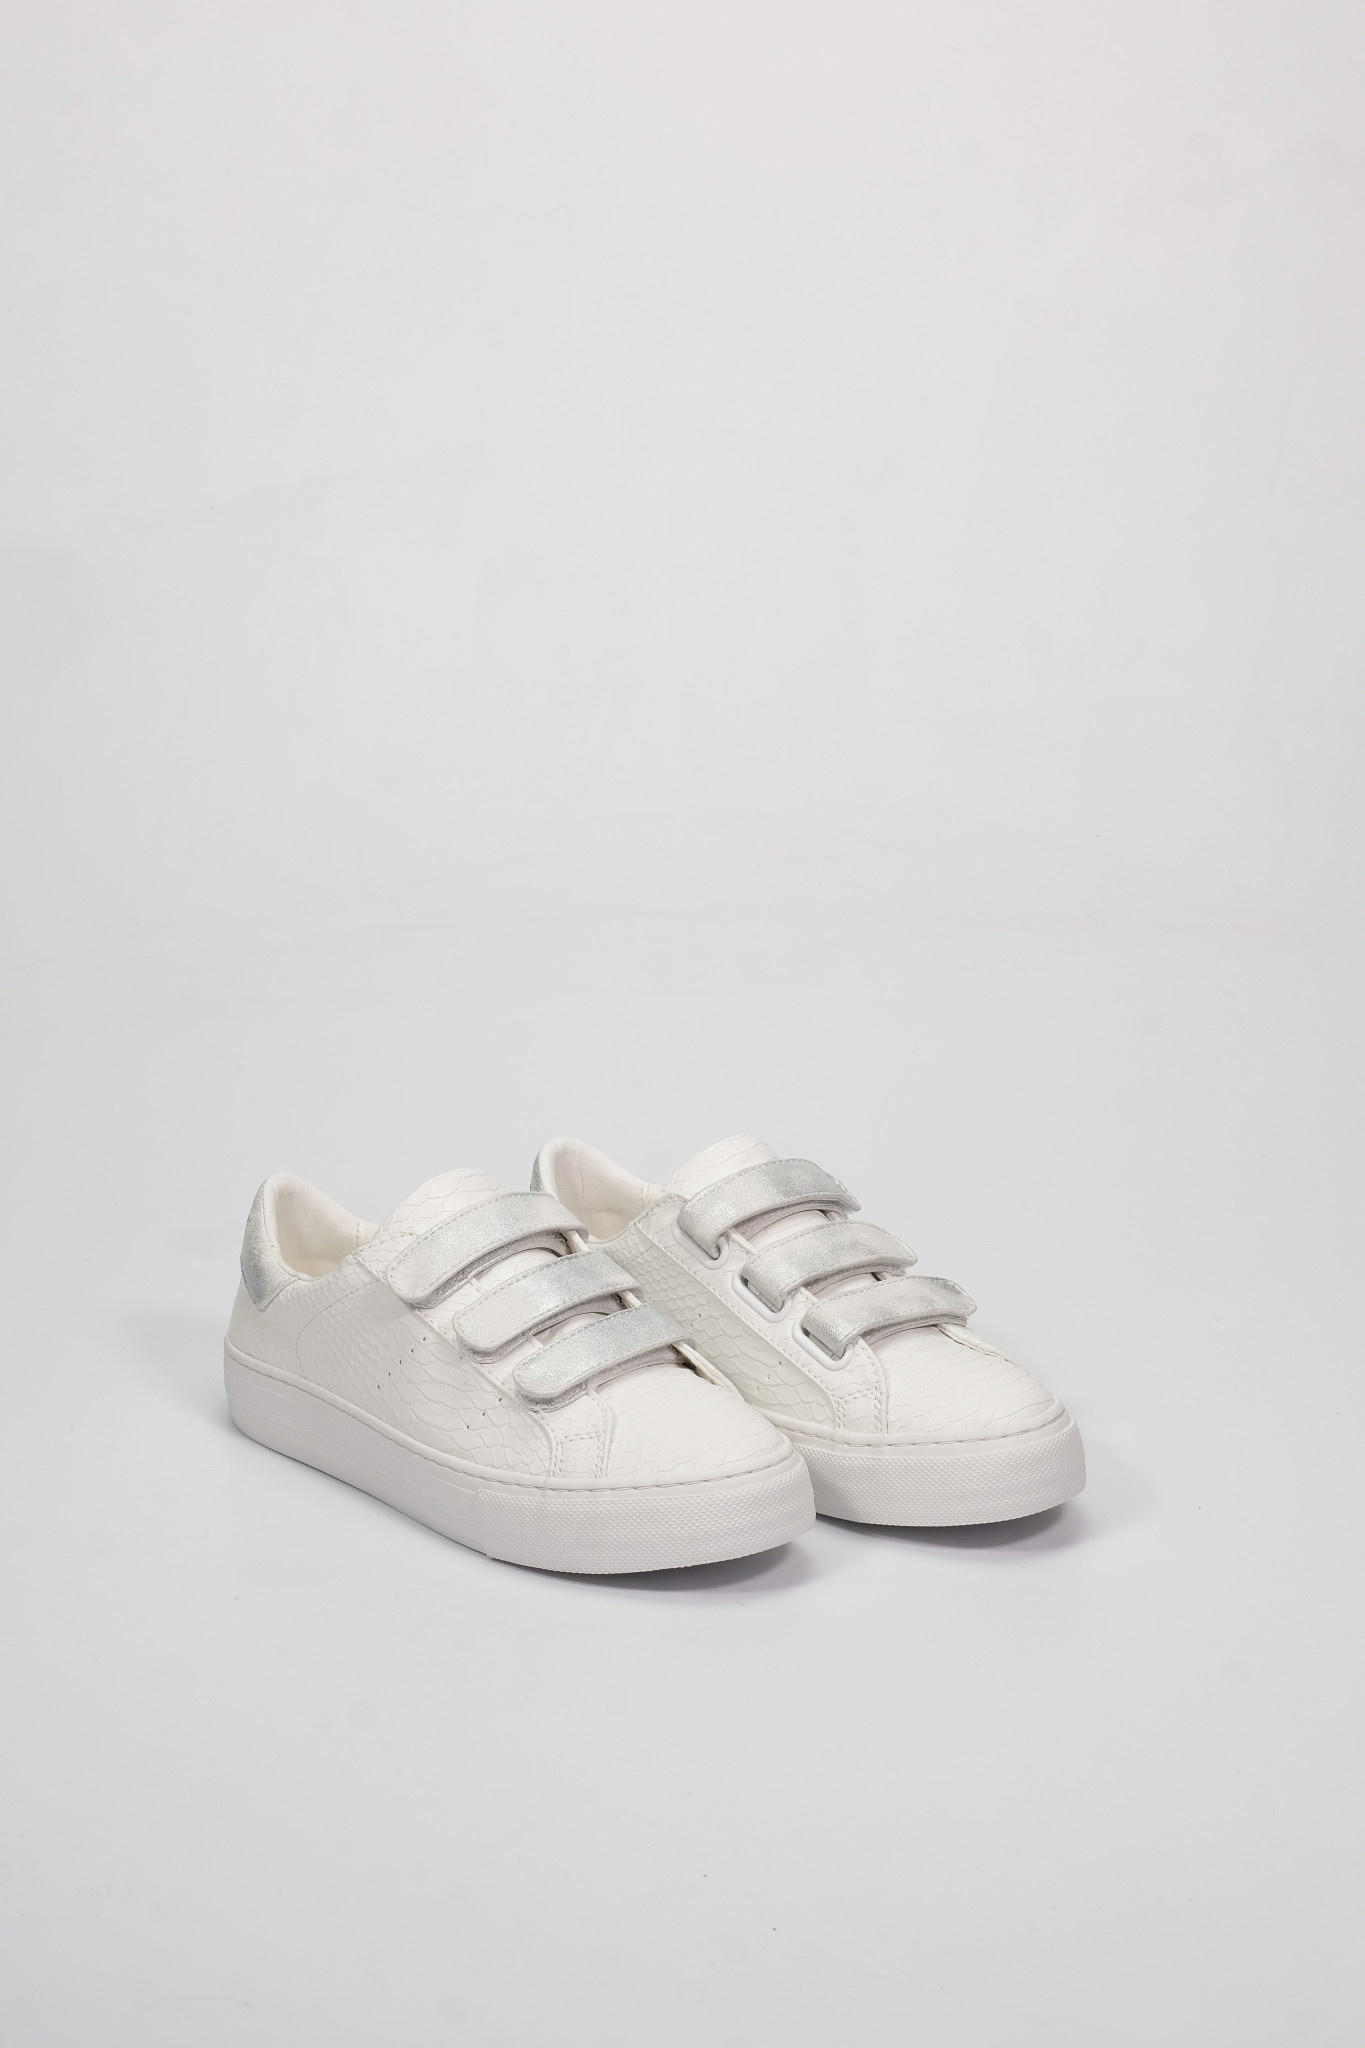 Factory Store Arcade straps all white